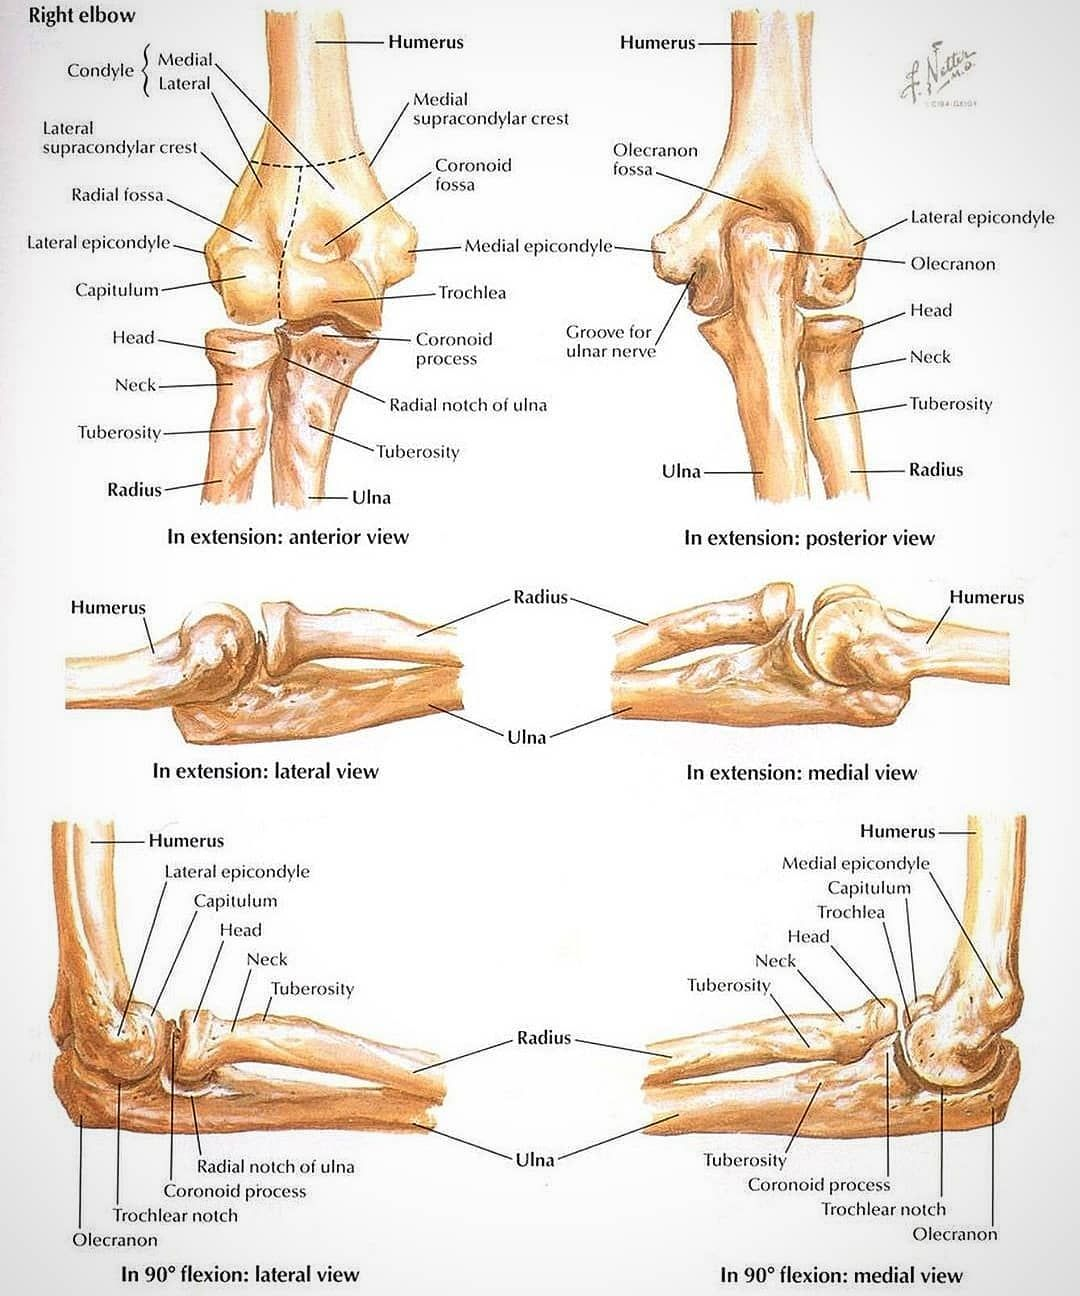 Elbow Anatomy The Elbow Joint Is A Hinge That Allows Extension And Flexion And Pronation And Supination Of T In 2020 Anatomy Bones Elbow Anatomy Skeleton Anatomy